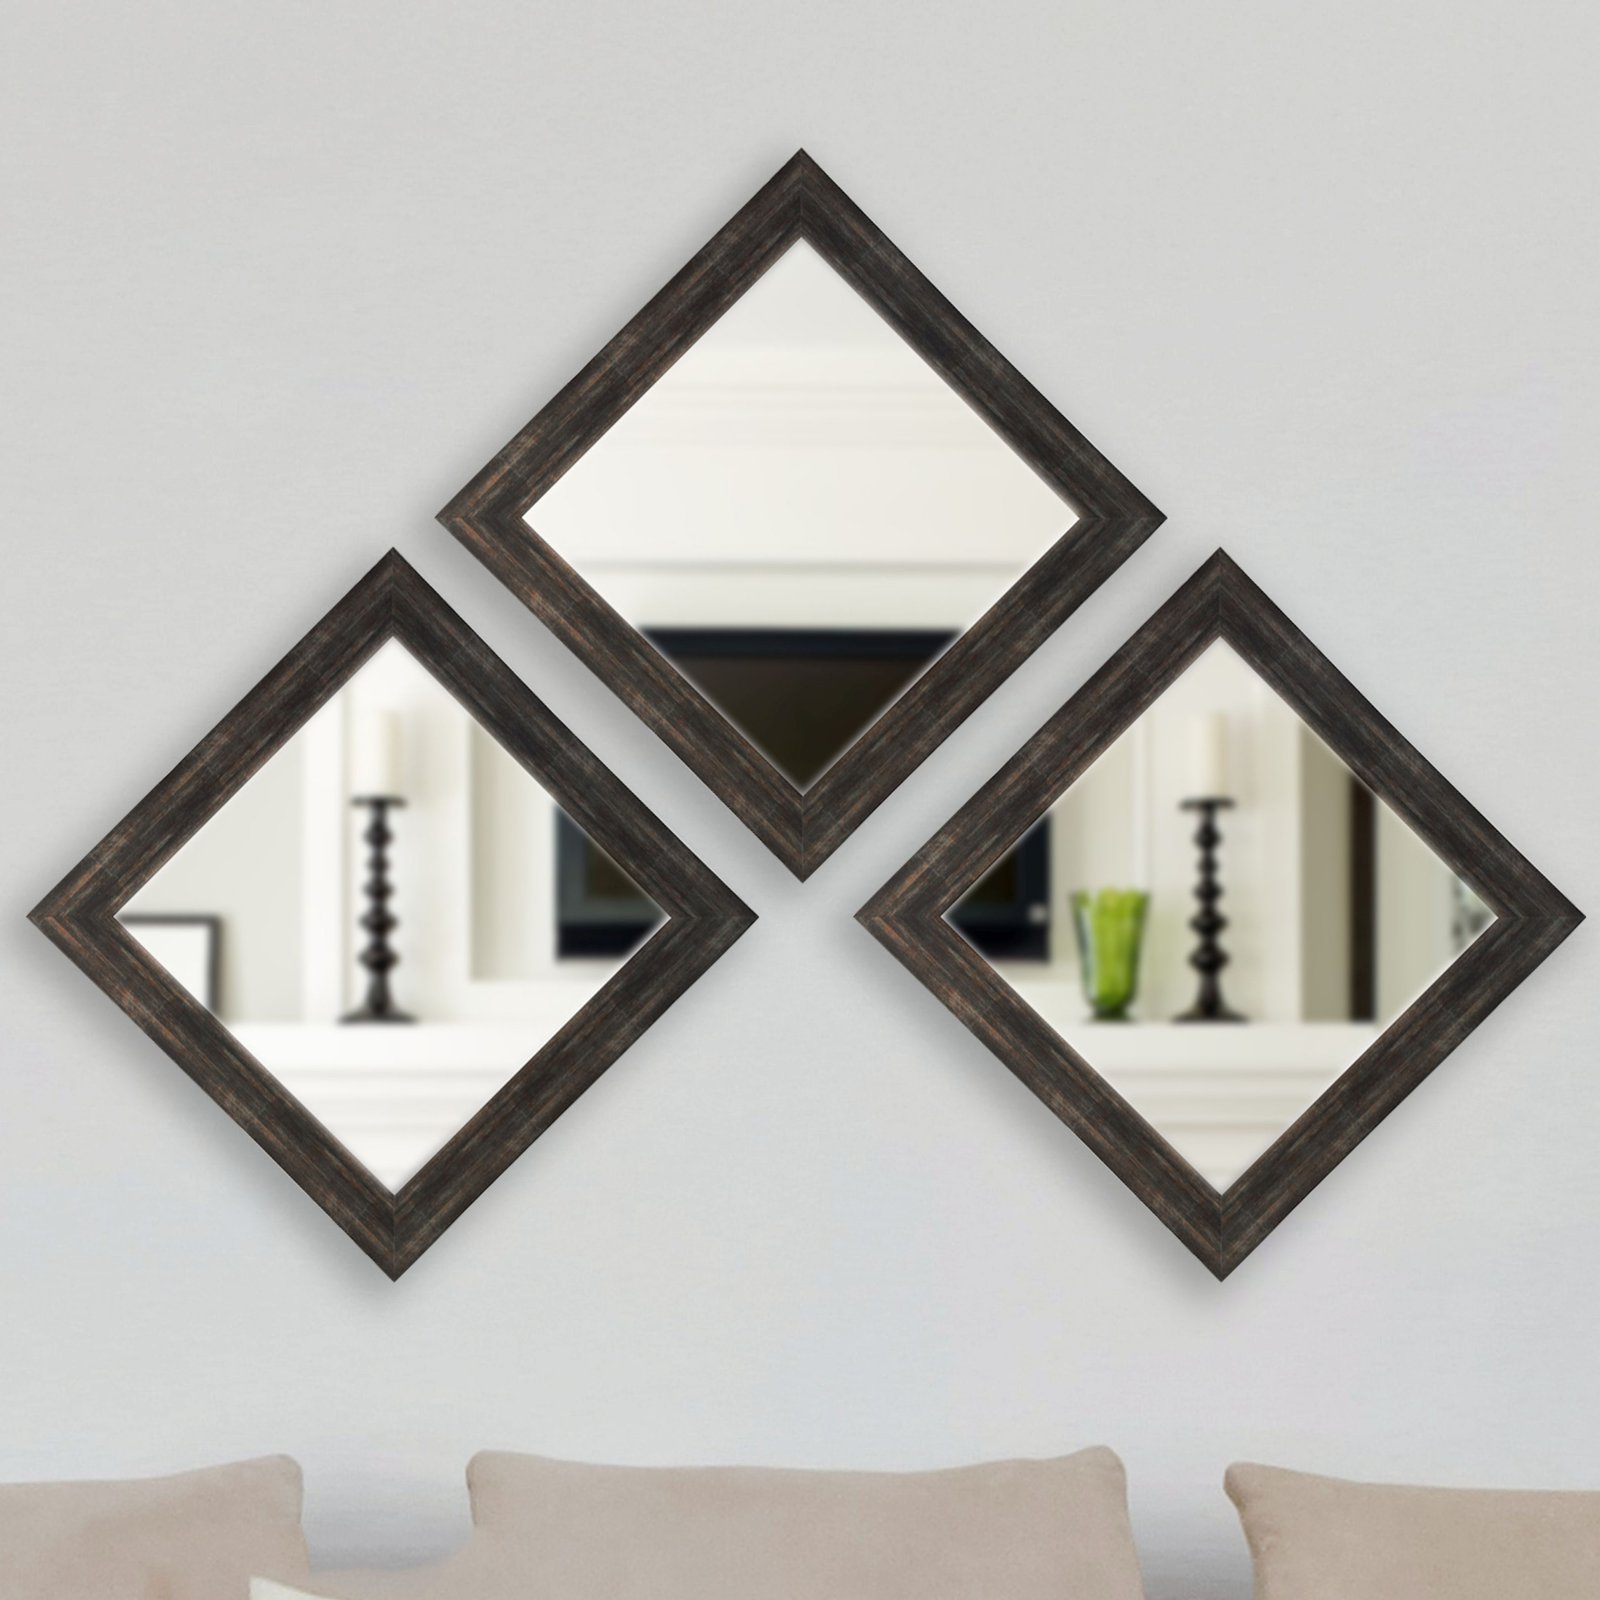 Rayne Mirrors Emerson Addison Sterling Square Wall Mirror - Set of 3